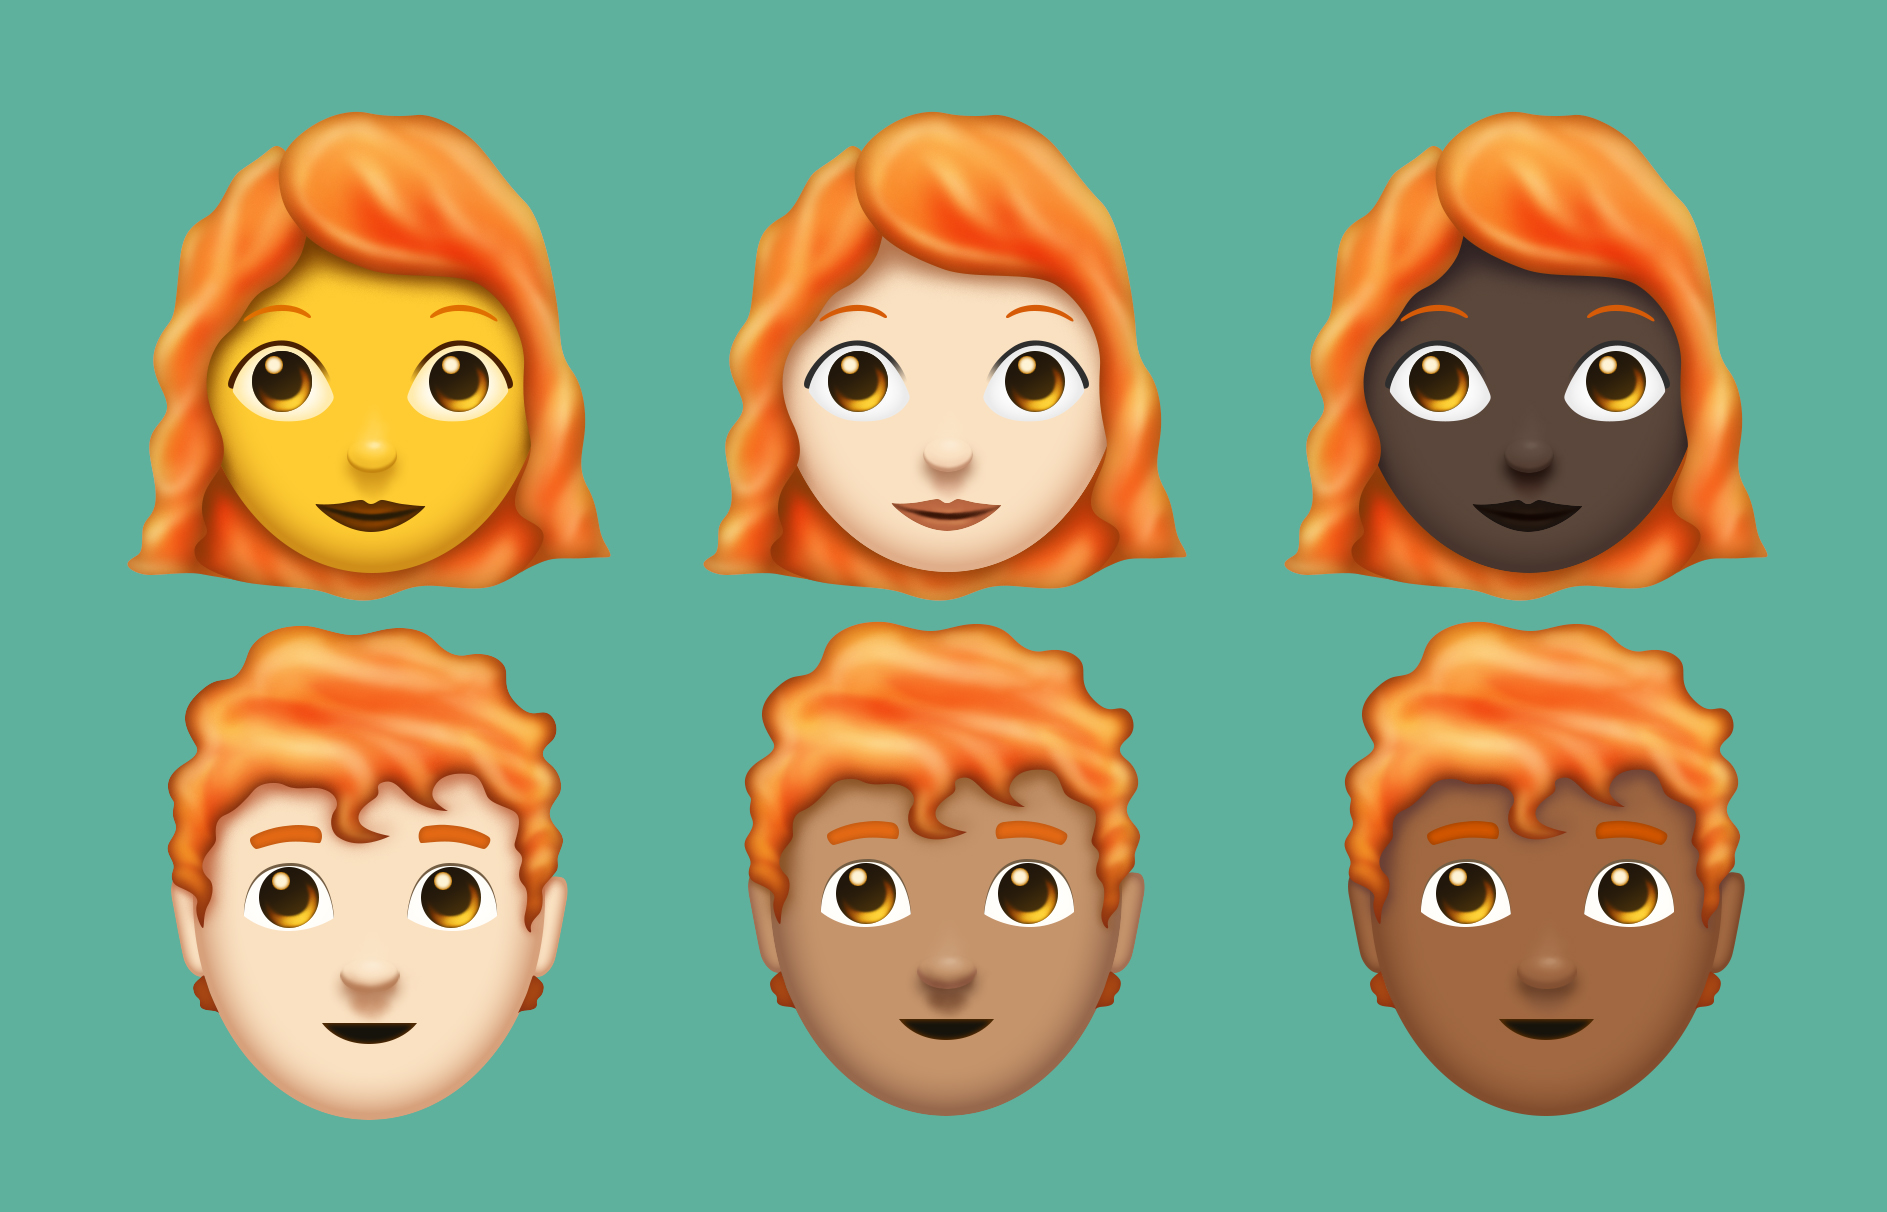 Red-haired emoji (Emojipedia)